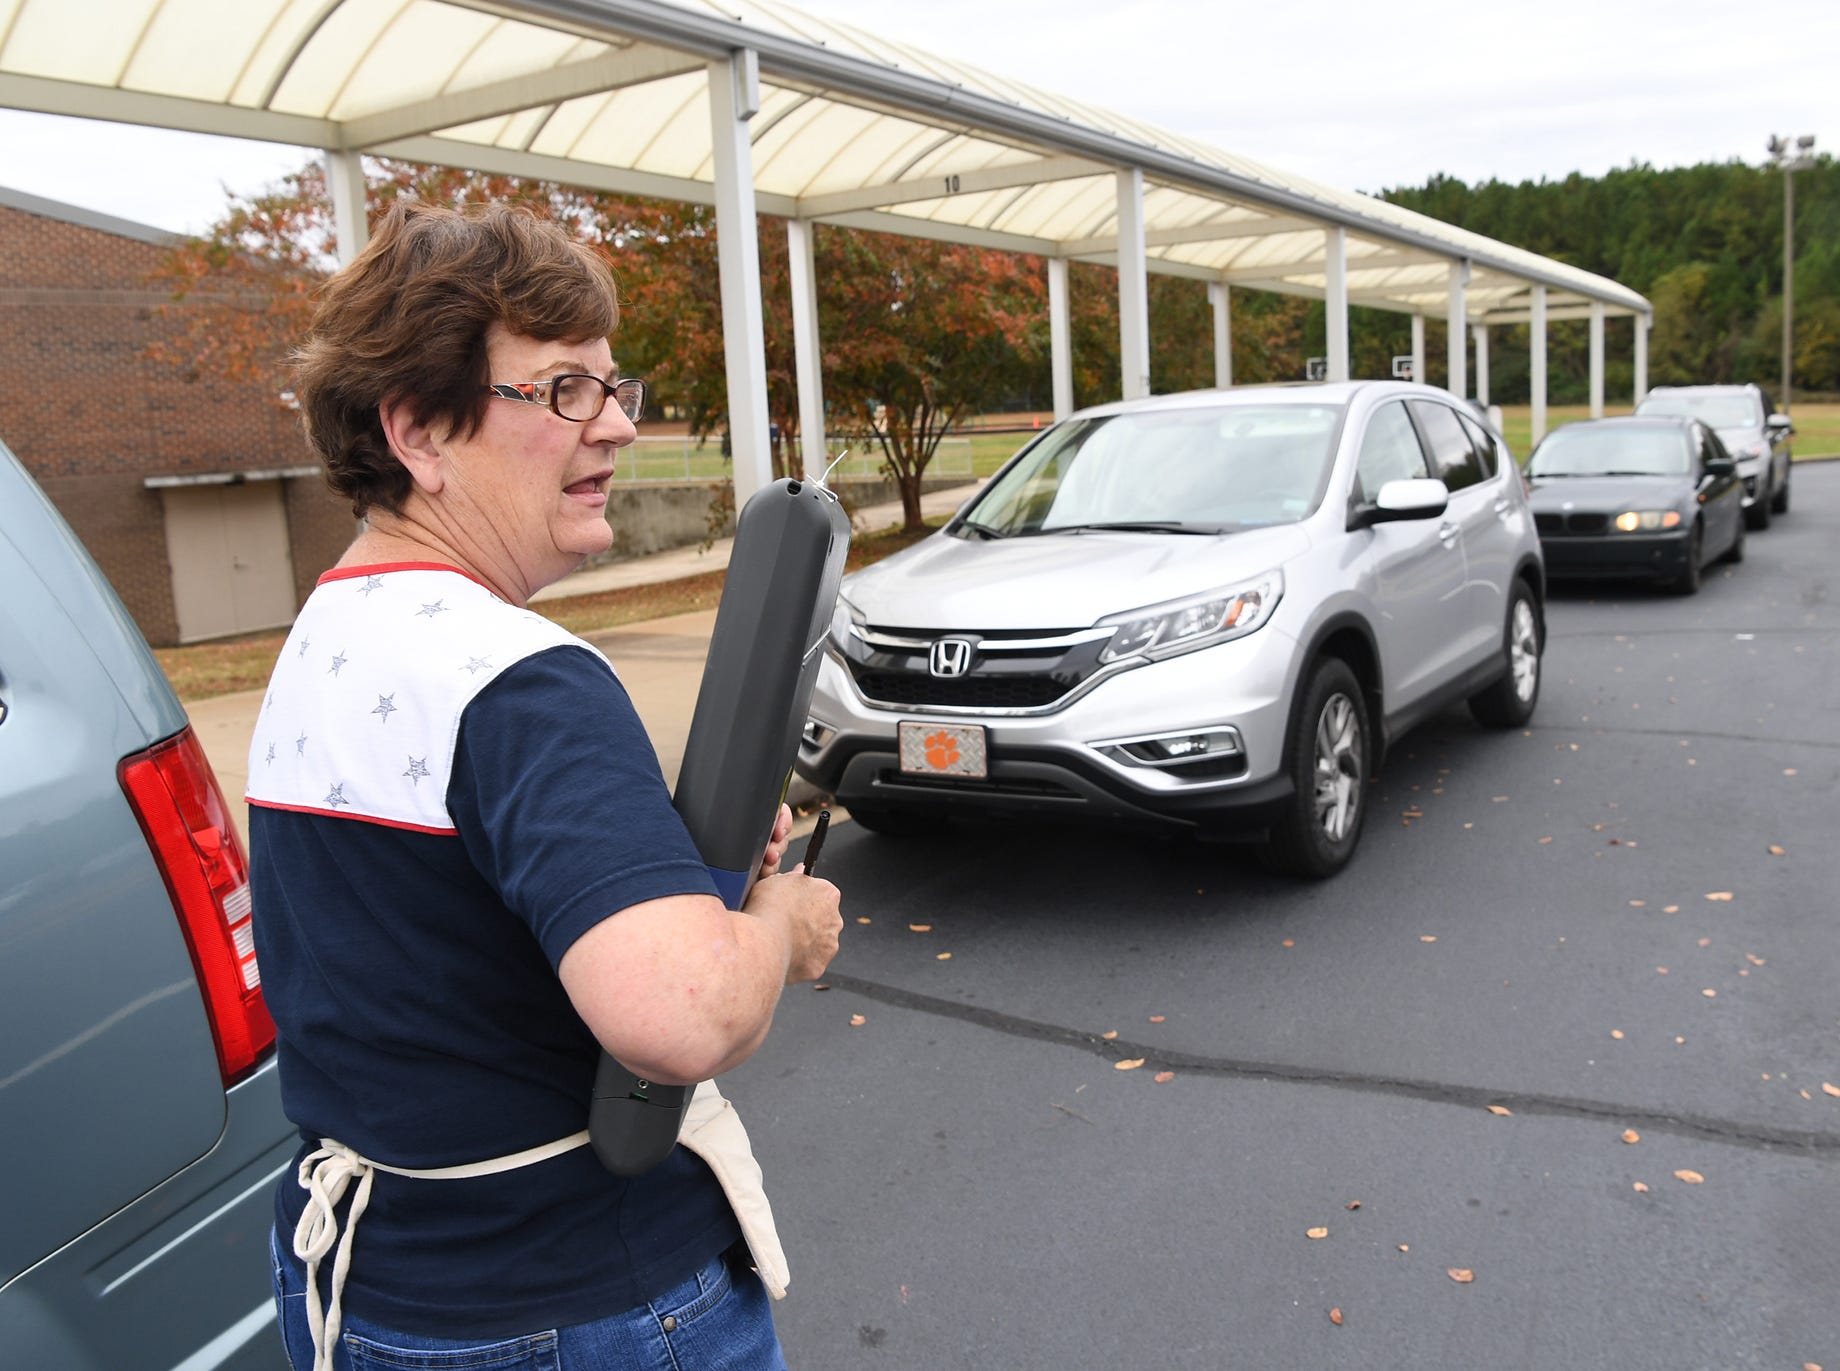 Melanie Thorne, poll clerk of Hammond precinct at Midway Elementary in Anderson, helps Mike Mitchell with curbside voting in his car on Tuesday, November 6, 2018.